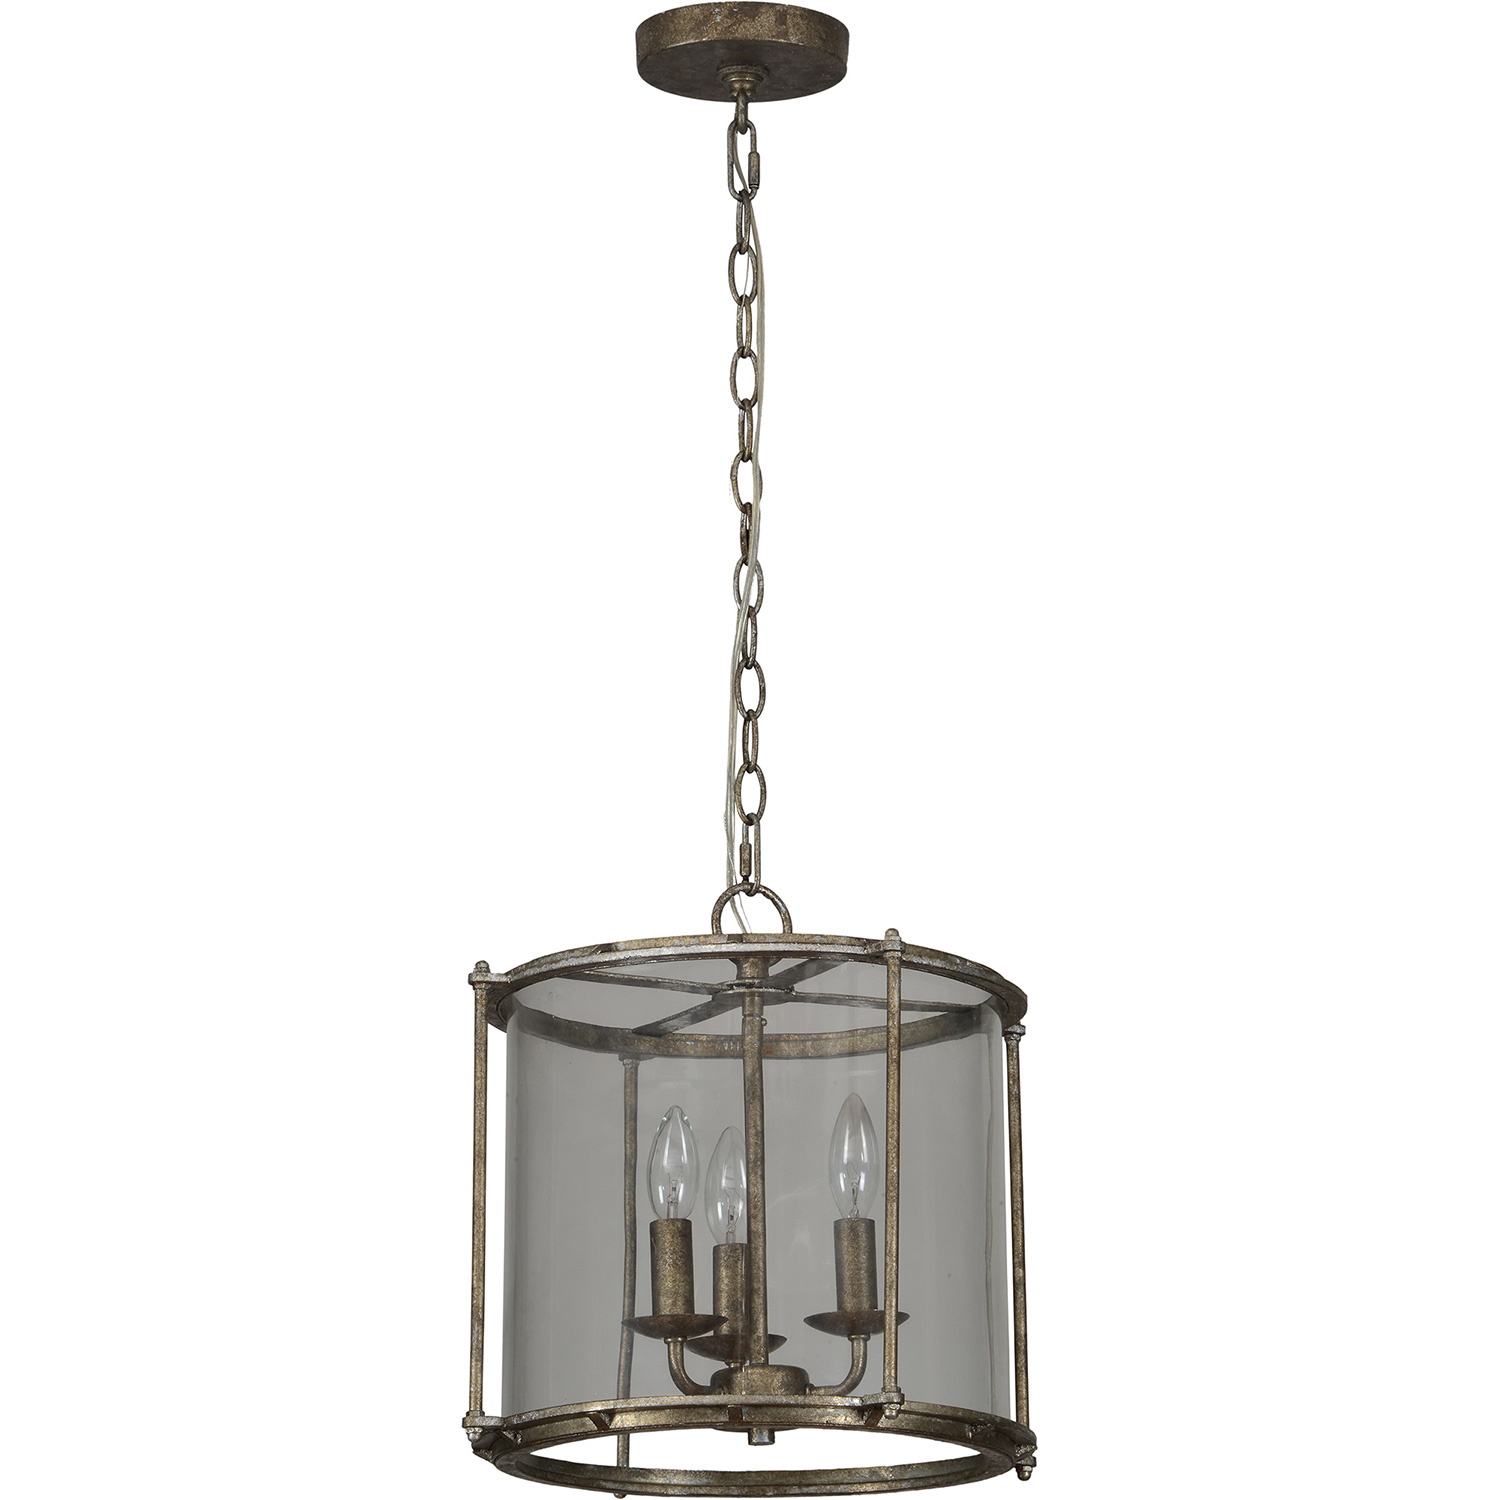 Ren-Wil Browning Ceiling Fixture - Rustic Silver/Clear